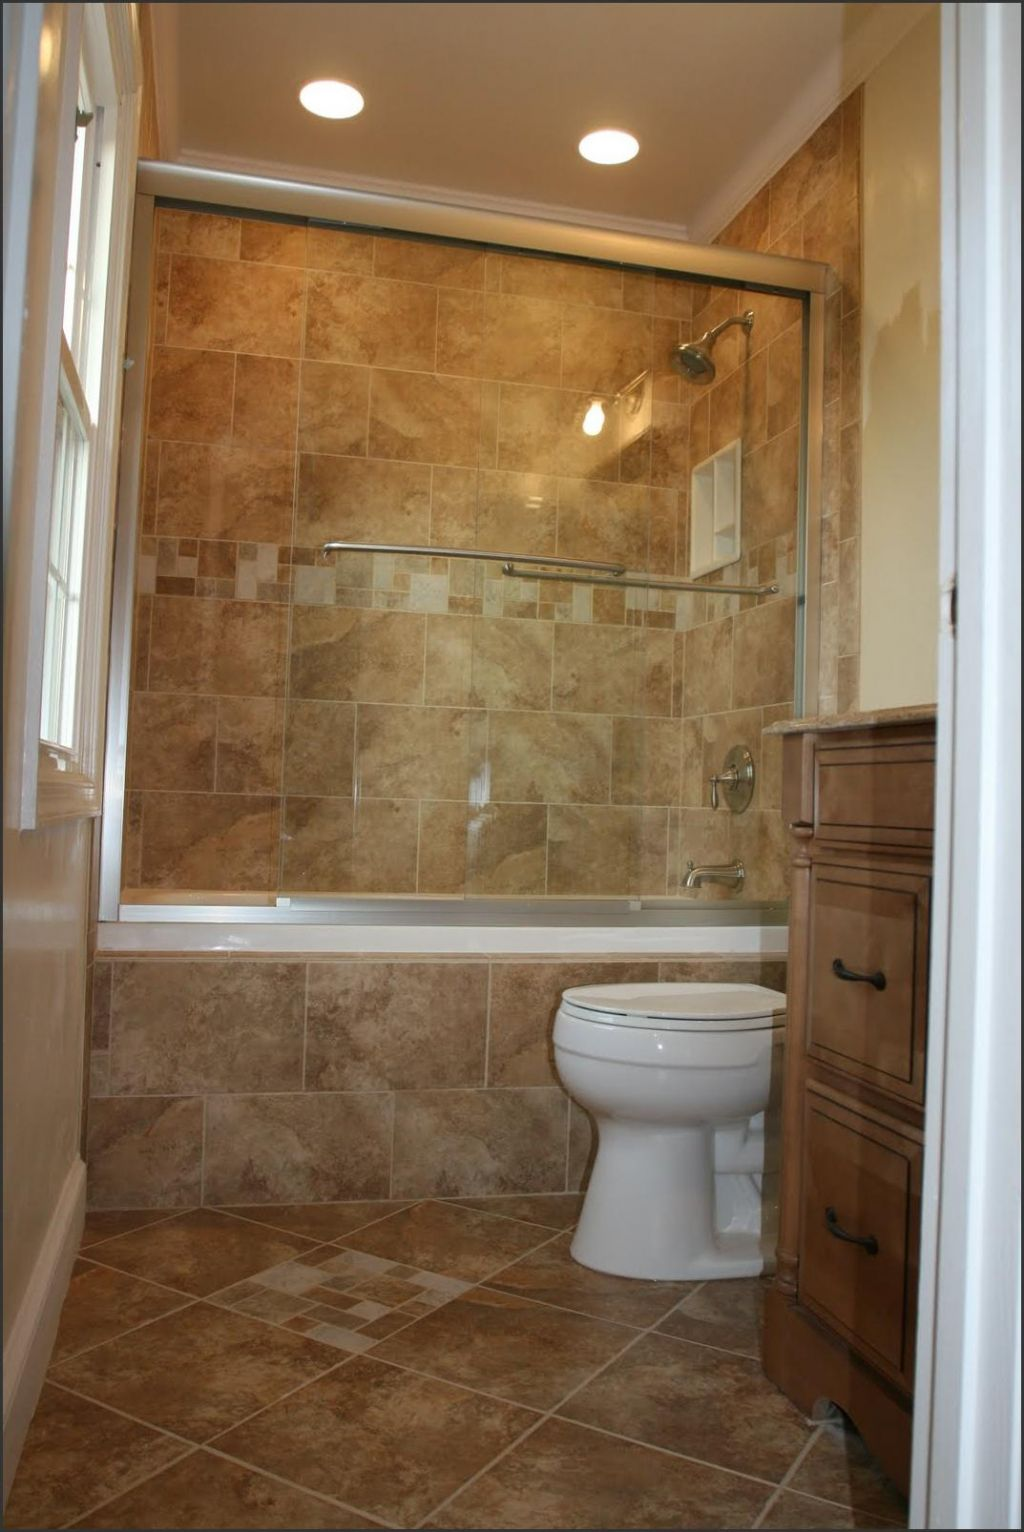 Bathroom Tub And Shower Tile Designs : Ideas for shower tile designs midcityeast